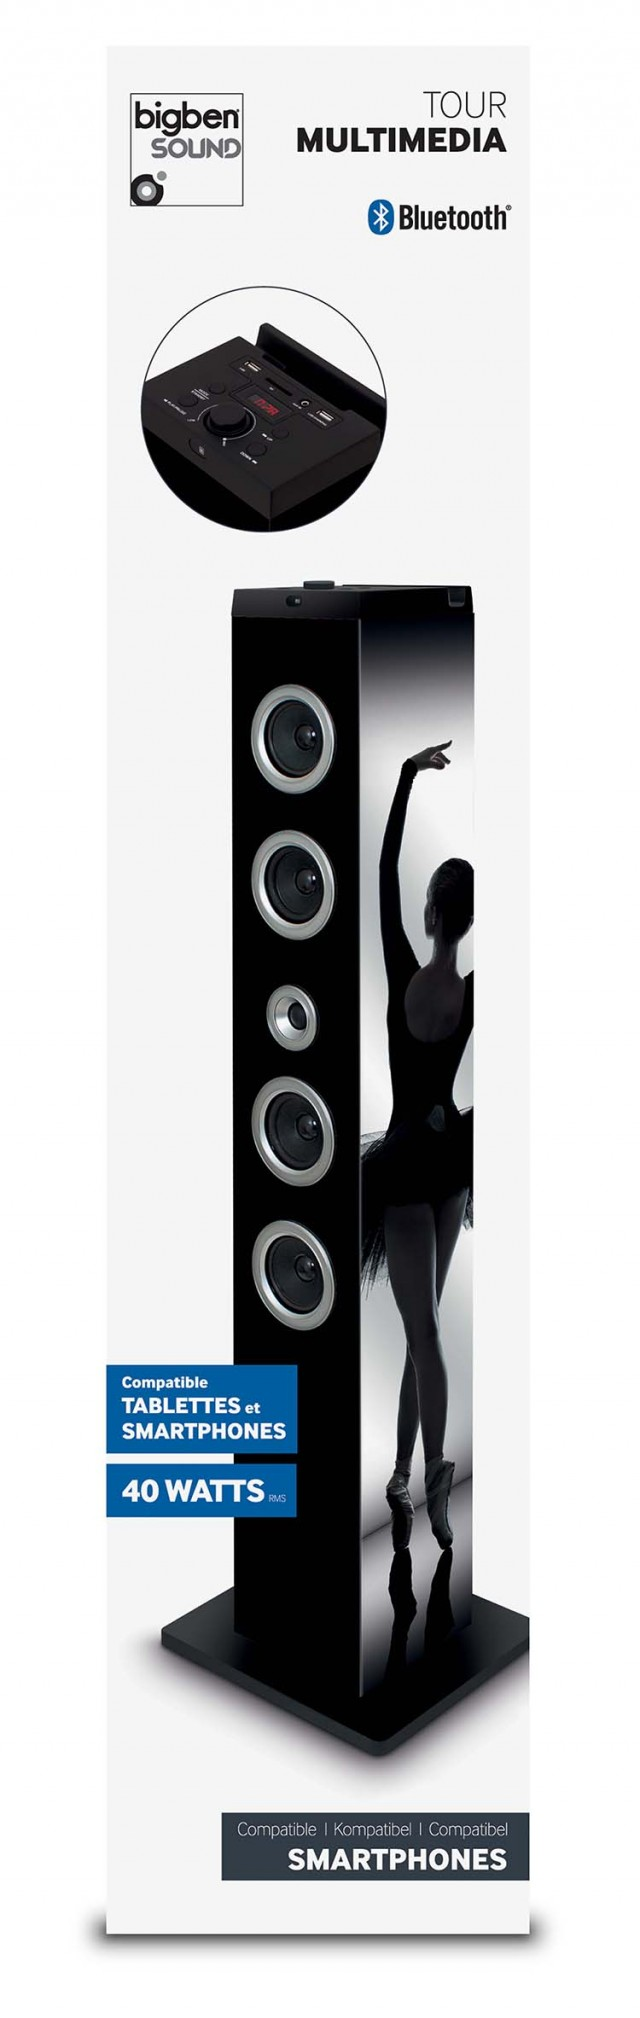 Multimedia Tower Ballerina – Immagine #1